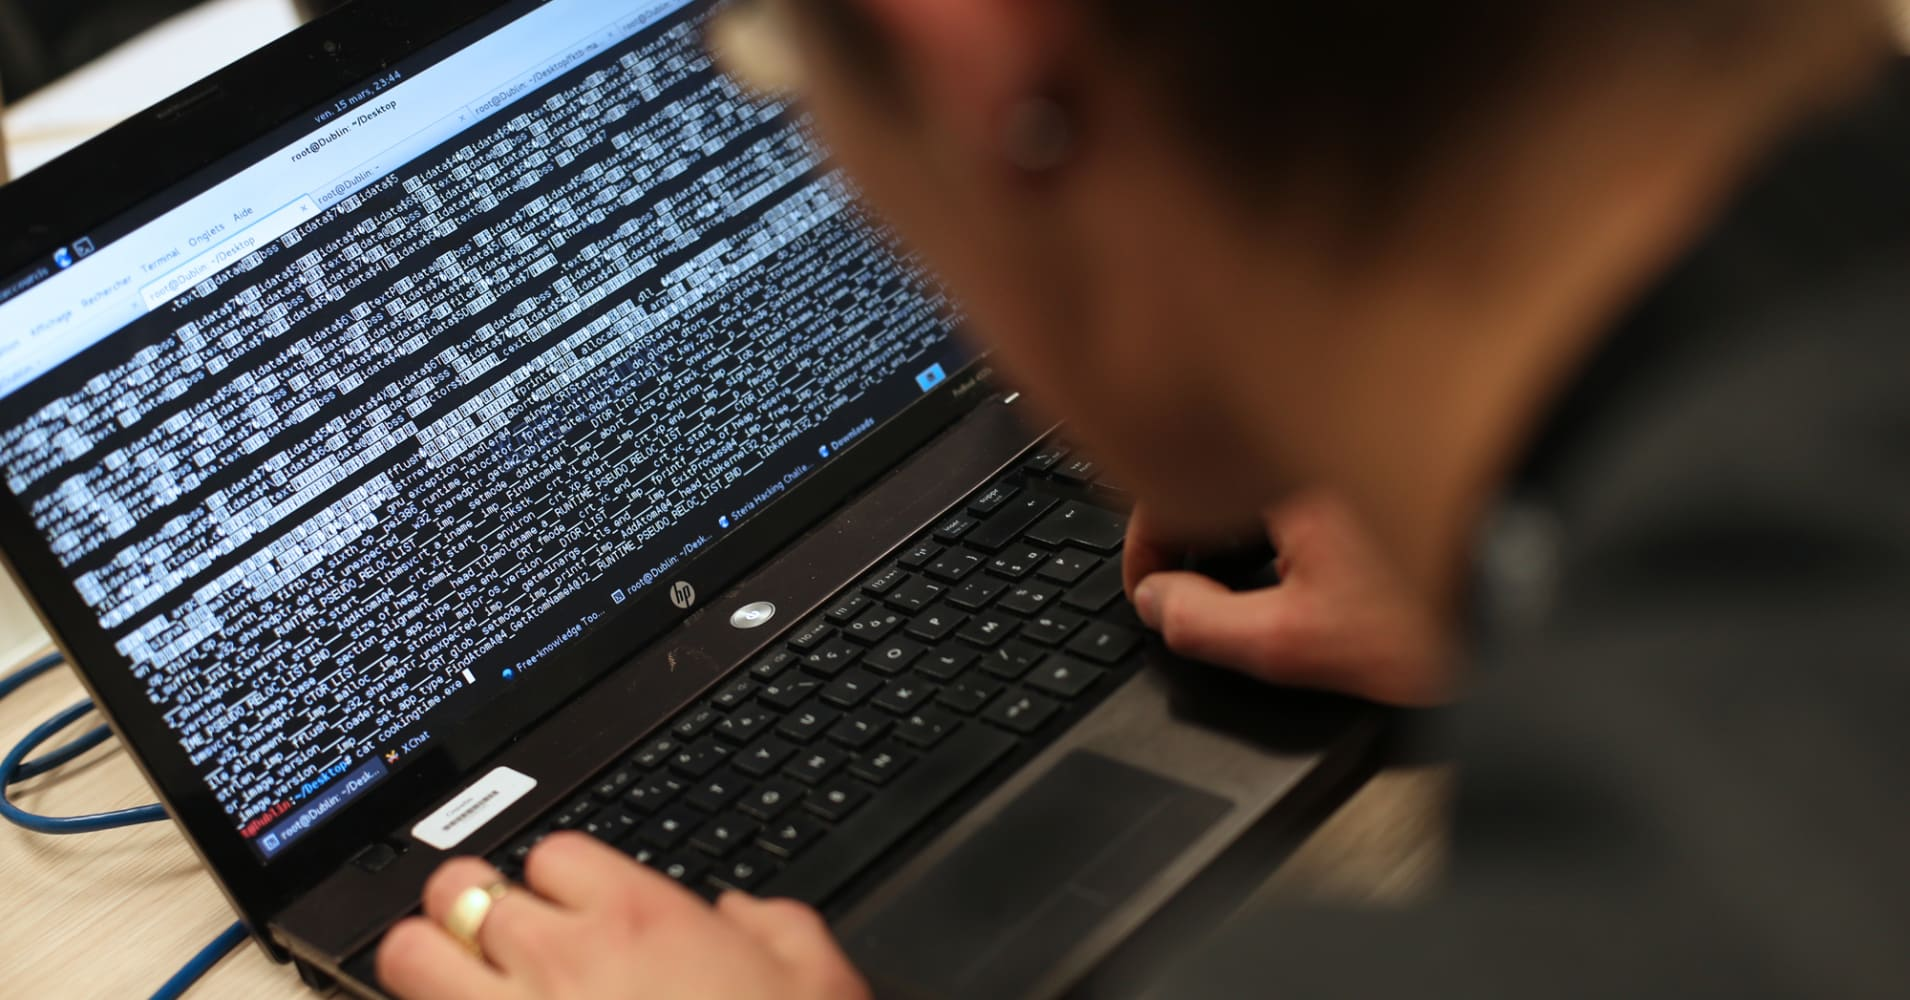 Hackers using identity theft tactics to scam businesses out of data